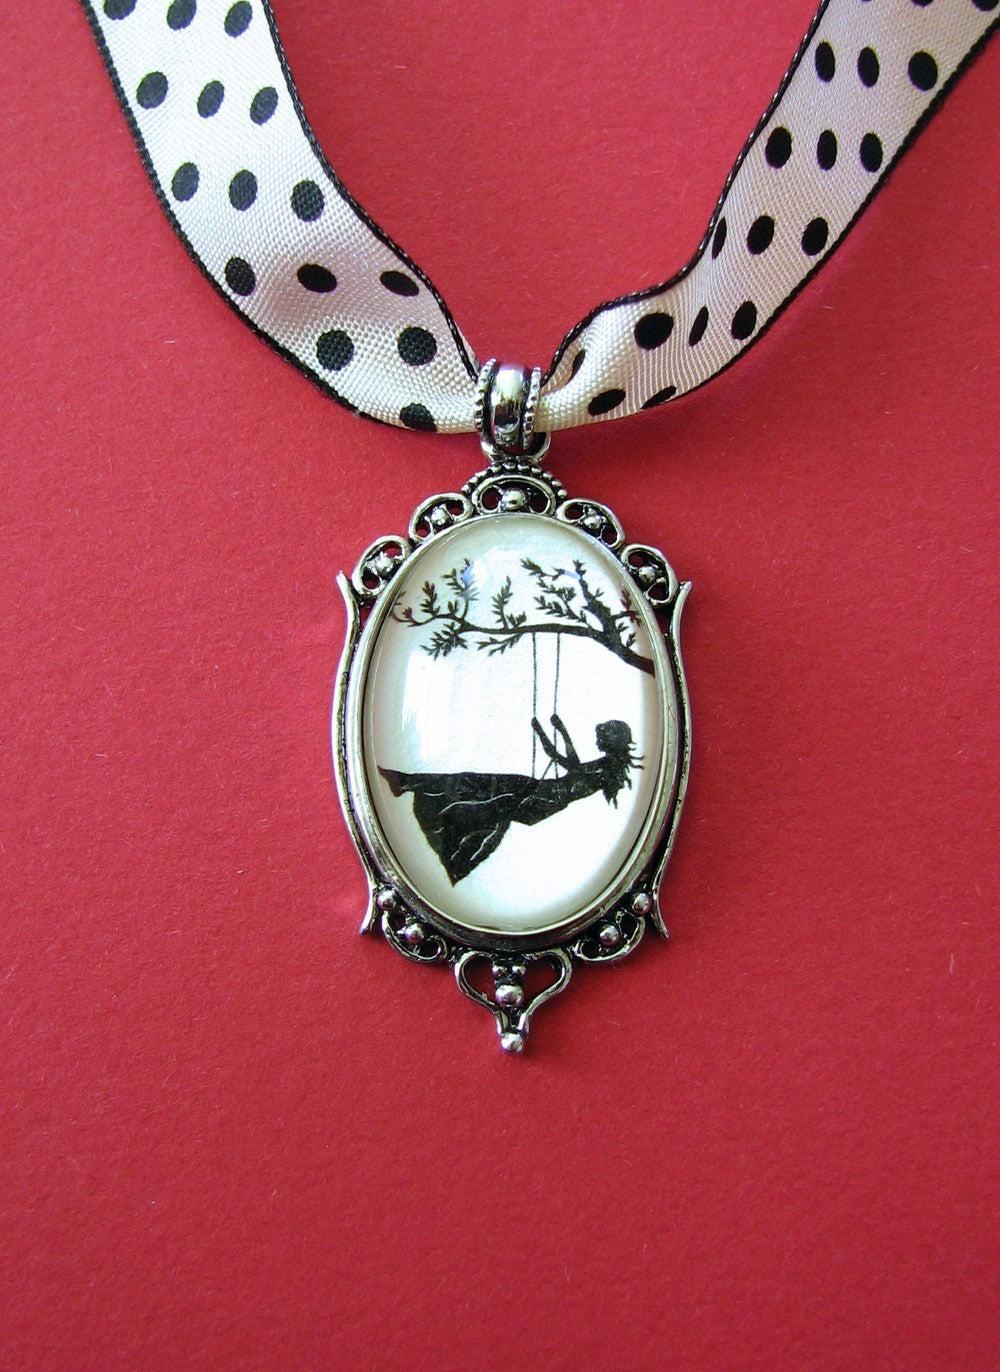 GIRL on a SWING Choker Necklace, pendant on ribbon - Silhouette Jewelry